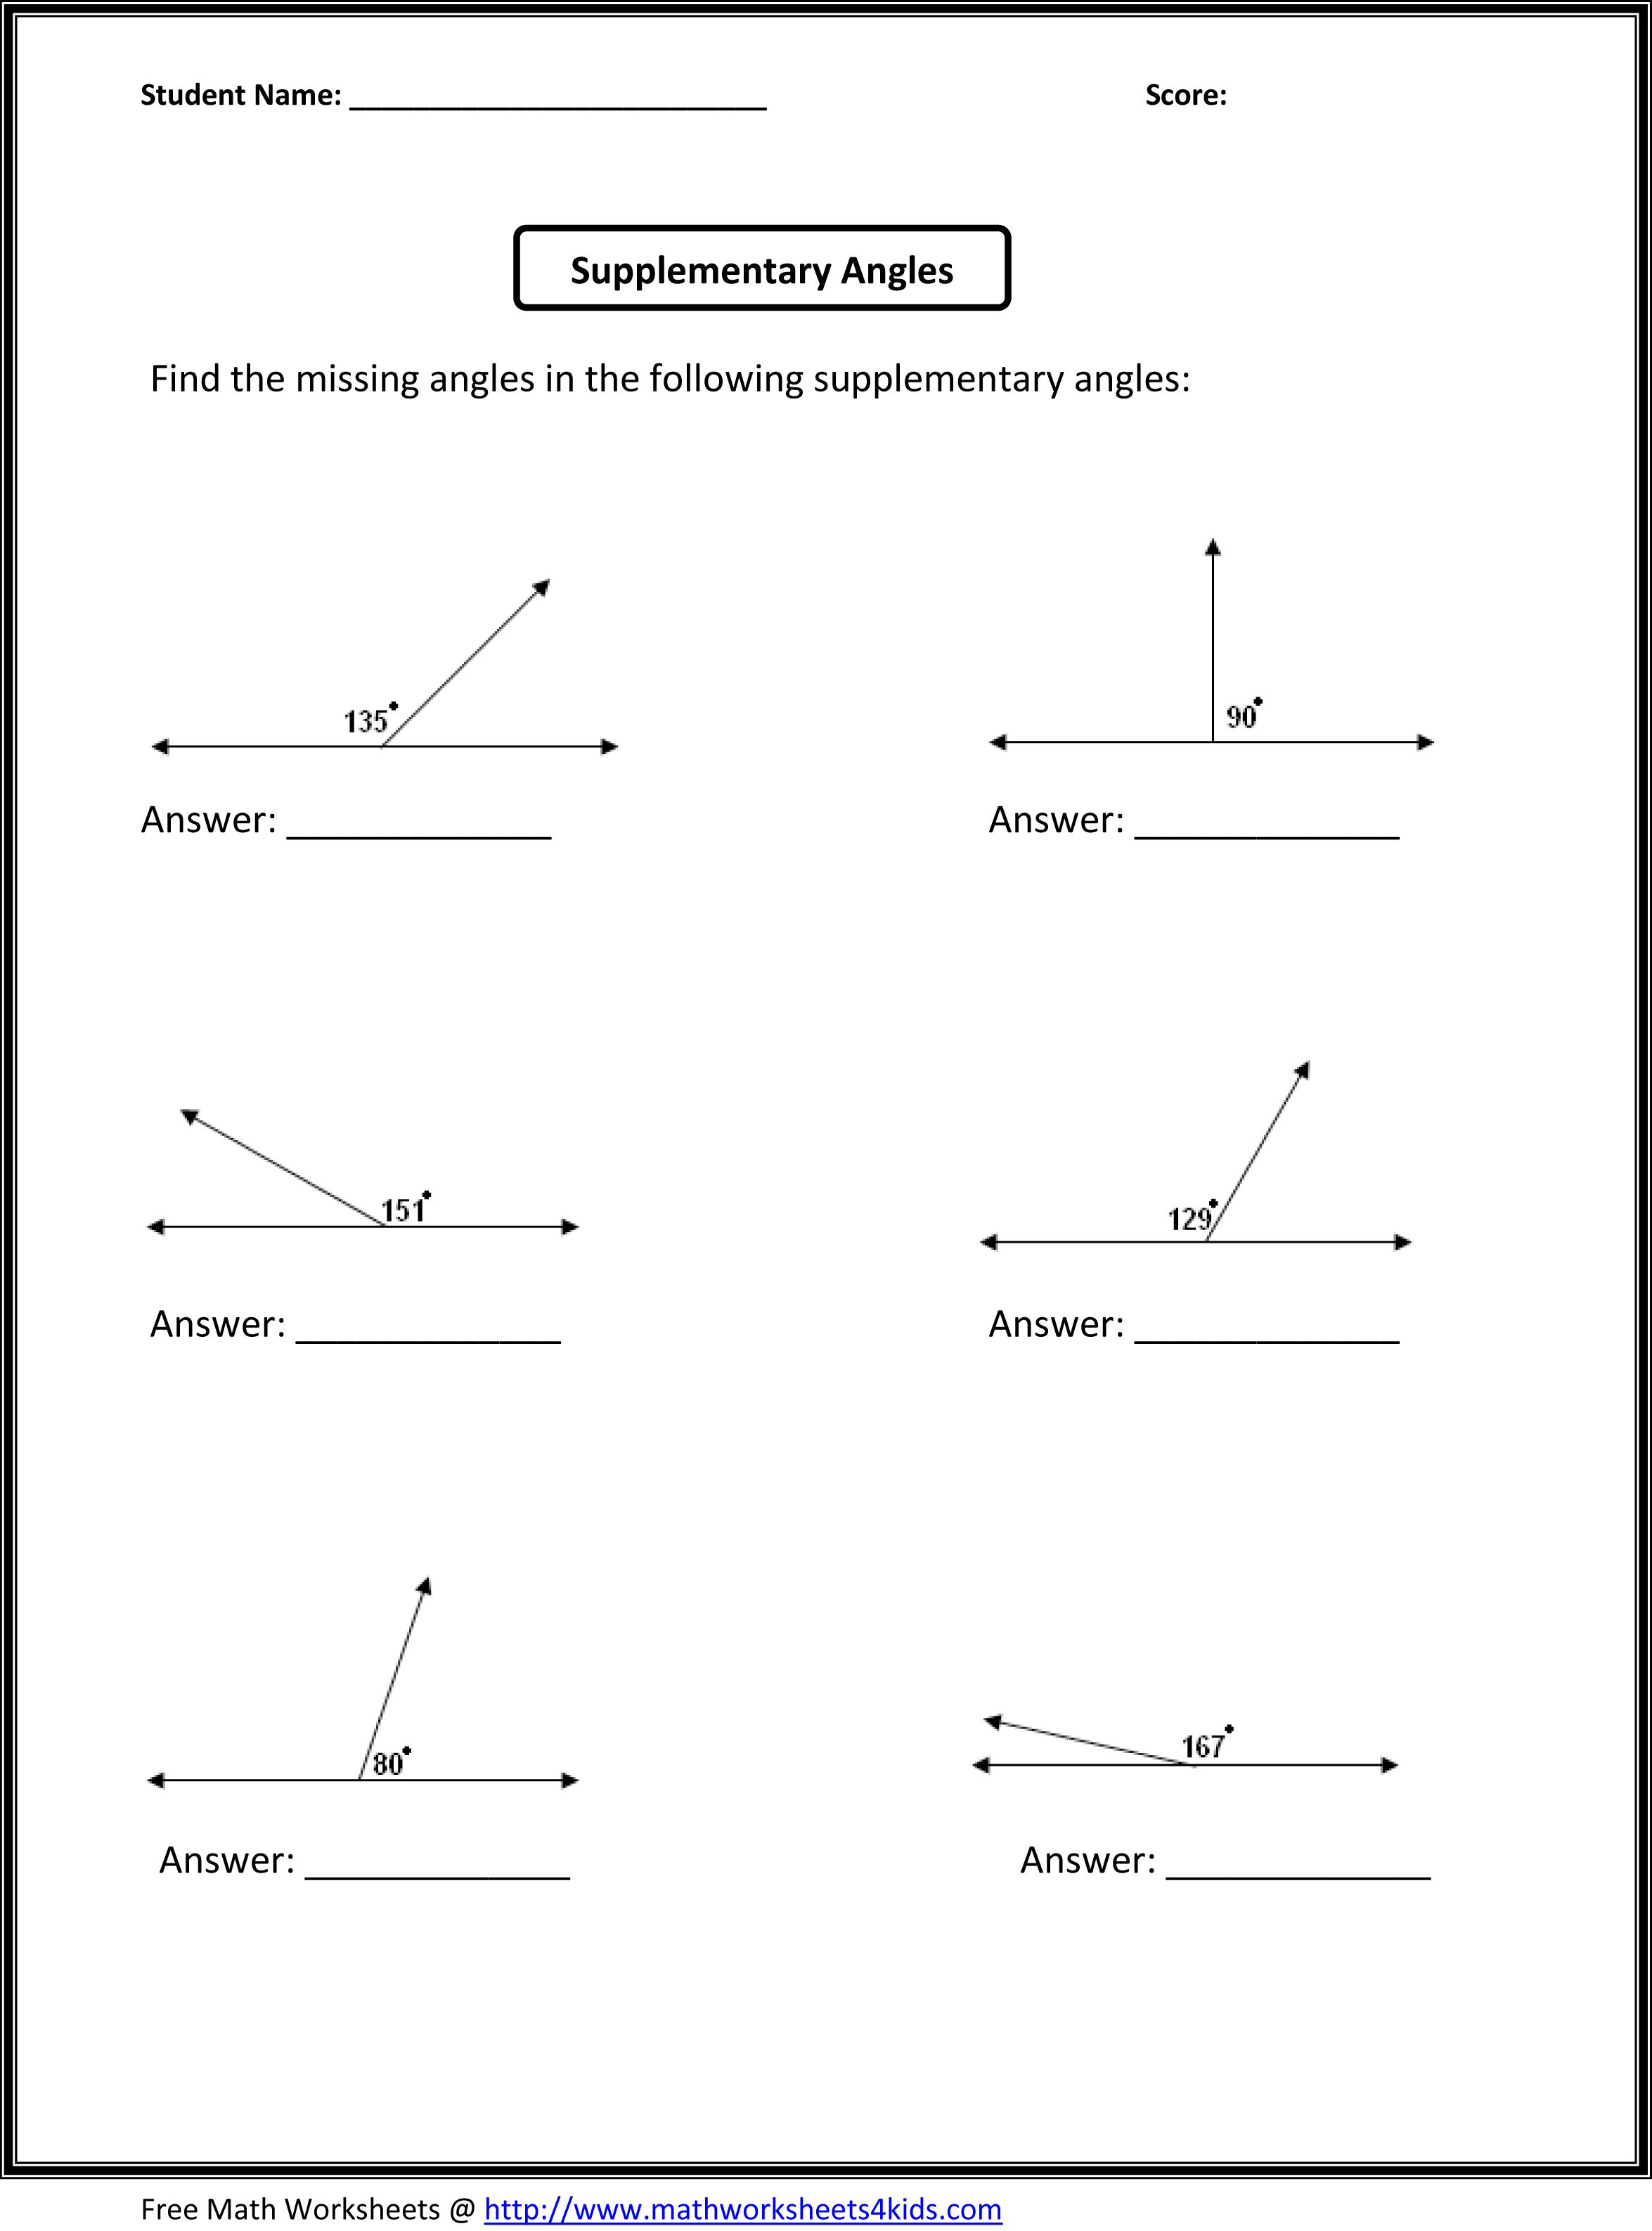 Sixth grade math worksheets have ratio; multiplying and dividing fractions;  probability and more.